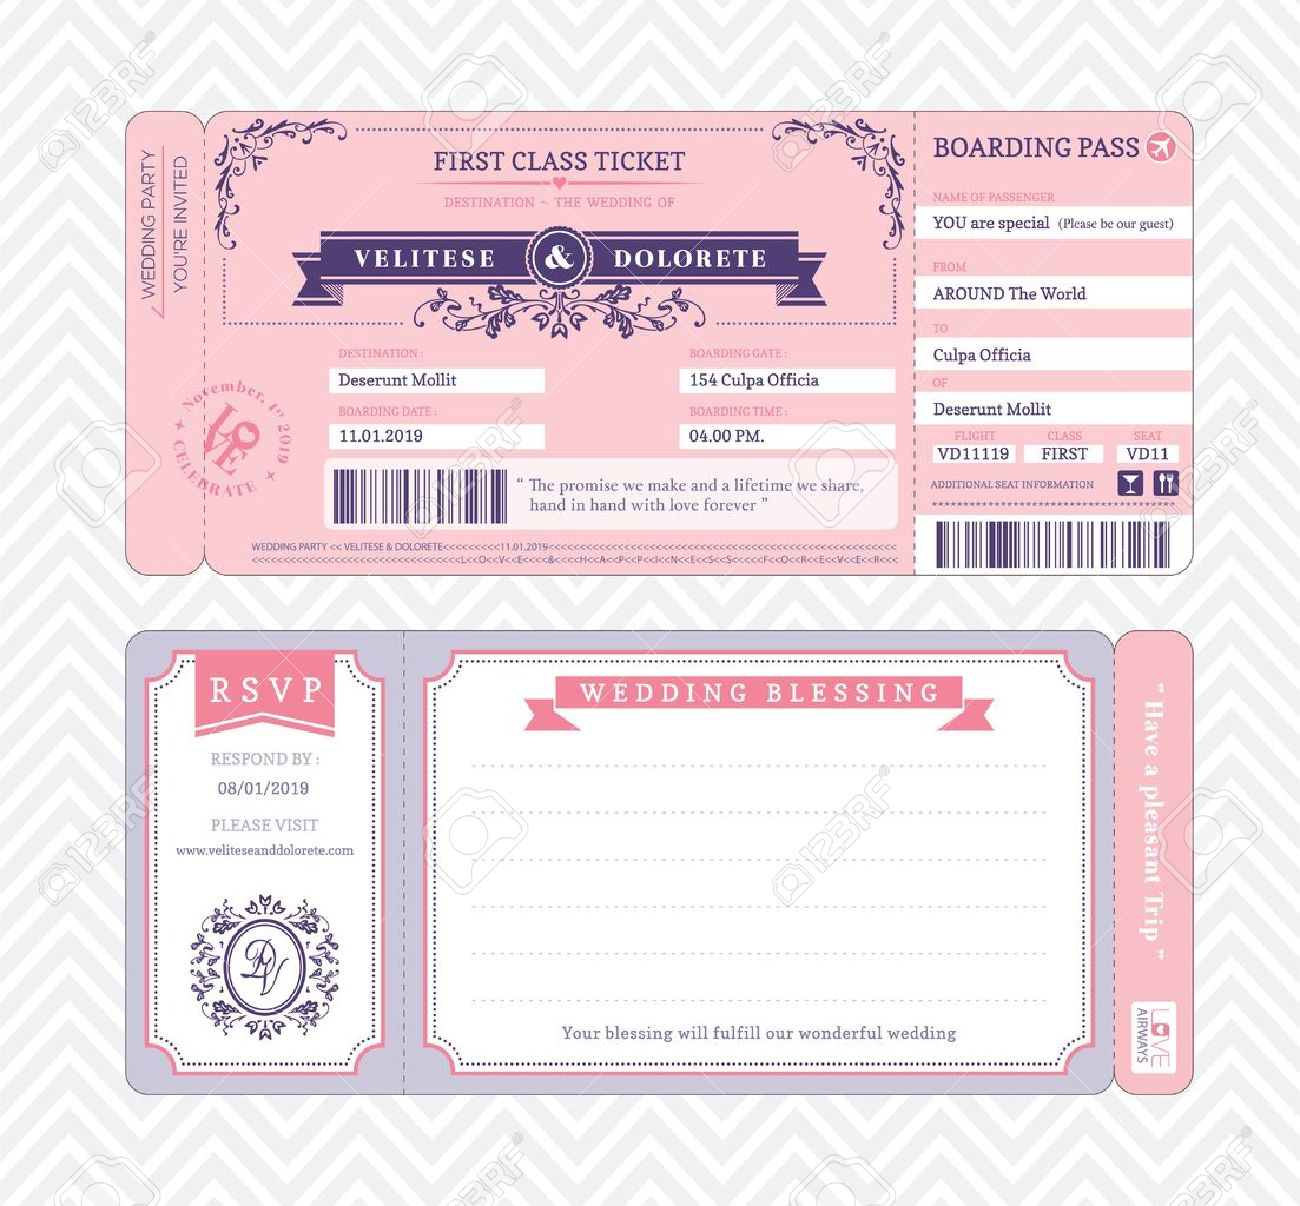 Boarding Pass Ticket Wedding Invitation Template Royalty Free - Wedding invitation templates: wedding invitation downloadable templates